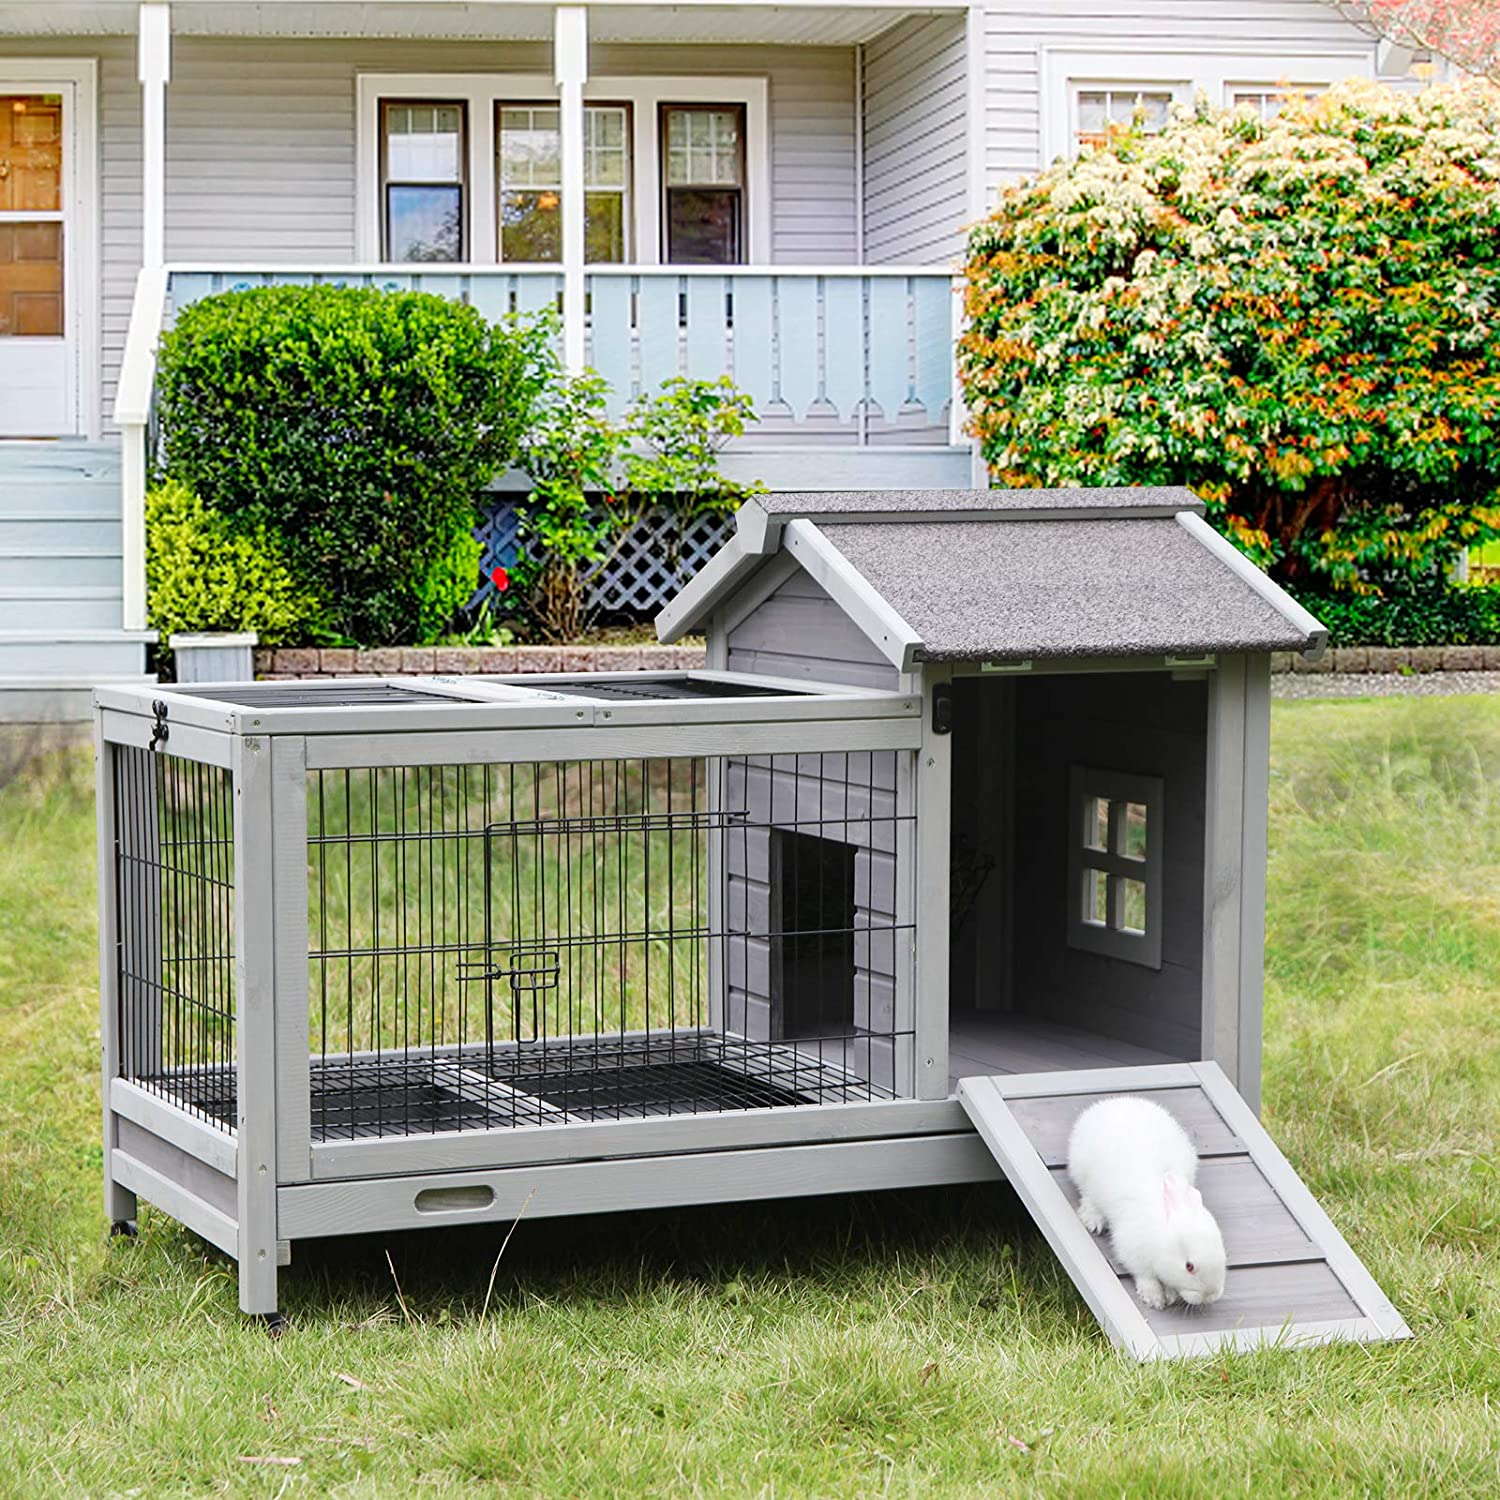 Aivituvin Rabbit Hutch Indoor Rabbit Cage Outdoor Bunny Hutch Guinea Pig  Cage with Removable Wire Floor & Wheels